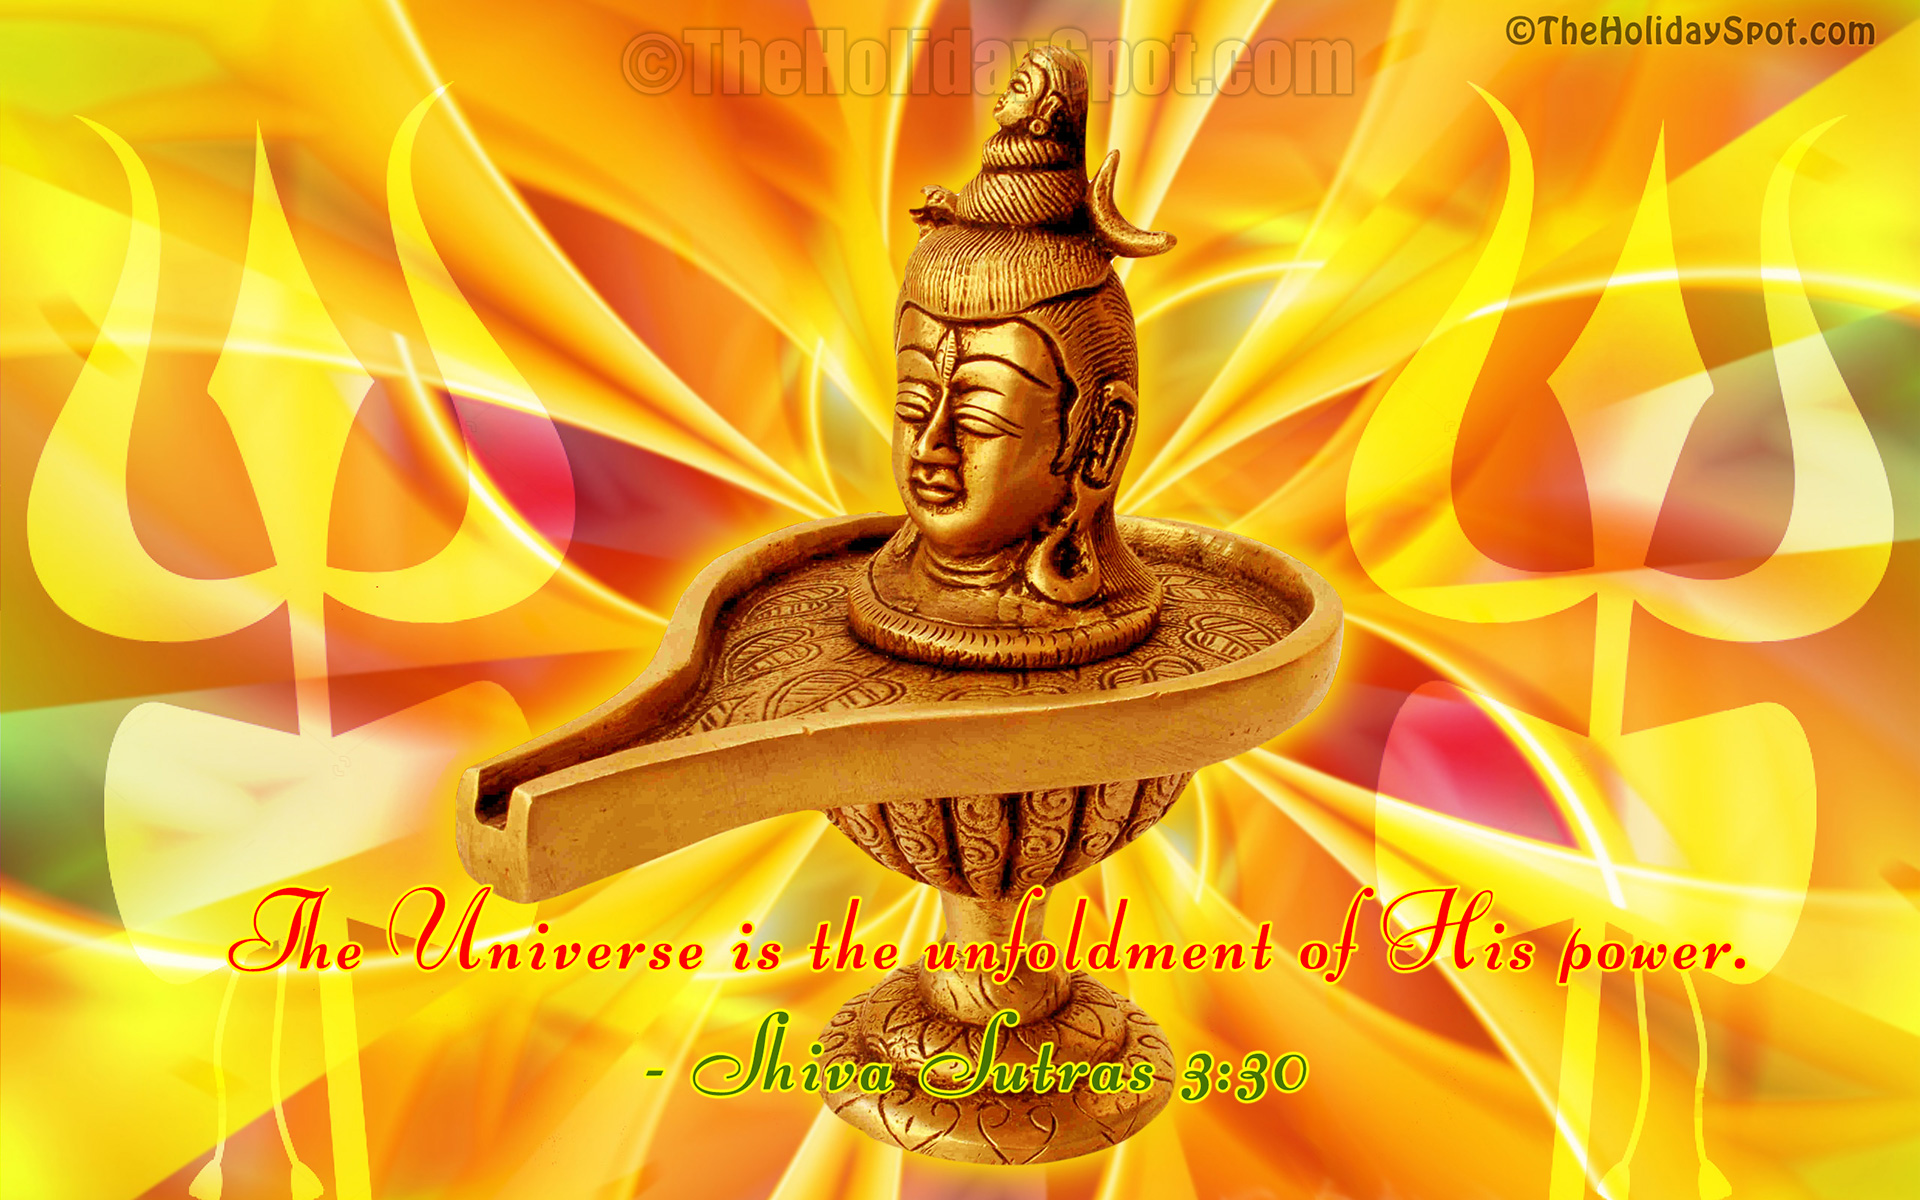 Lord Shiva Angry Wallpapers 3d Hd Download Shiva Lingam Wallpapers Free Download Gallery